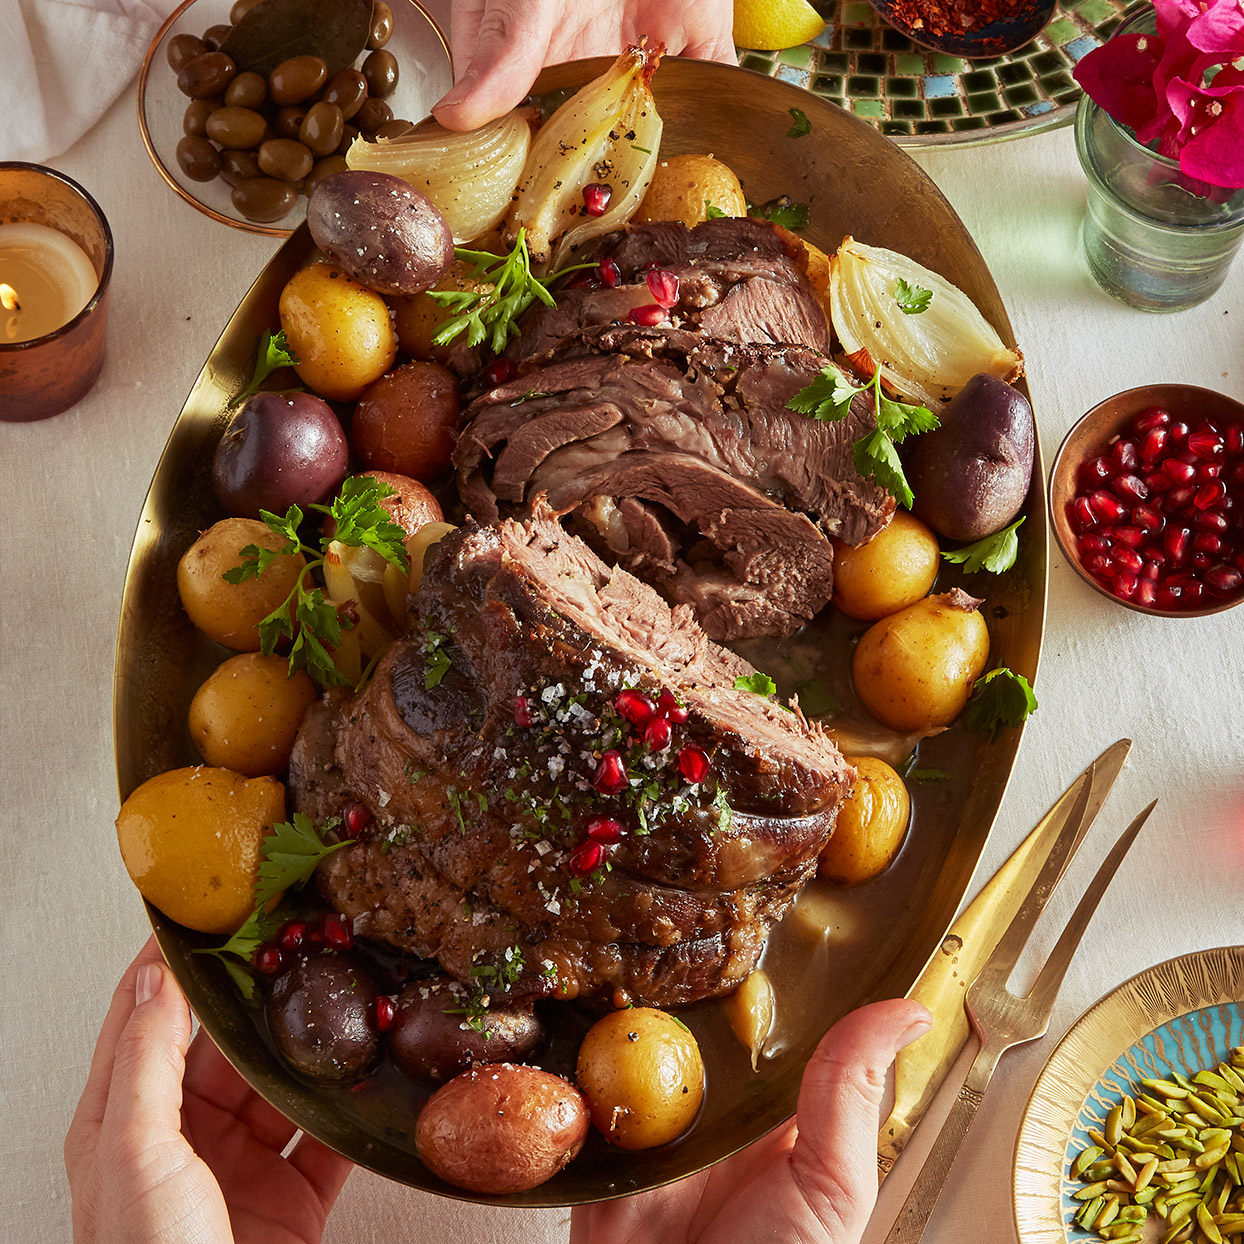 A long braise in the oven yields fork-tender results for a tough cut of lamb. Cinnamon, oregano, garlic and lemon infuse the lamb shoulder with Mediterranean aromas, while a final scattering of pomegranate arils provides a burst of color and crunch. Source: EatingWell Magazine, March 2020